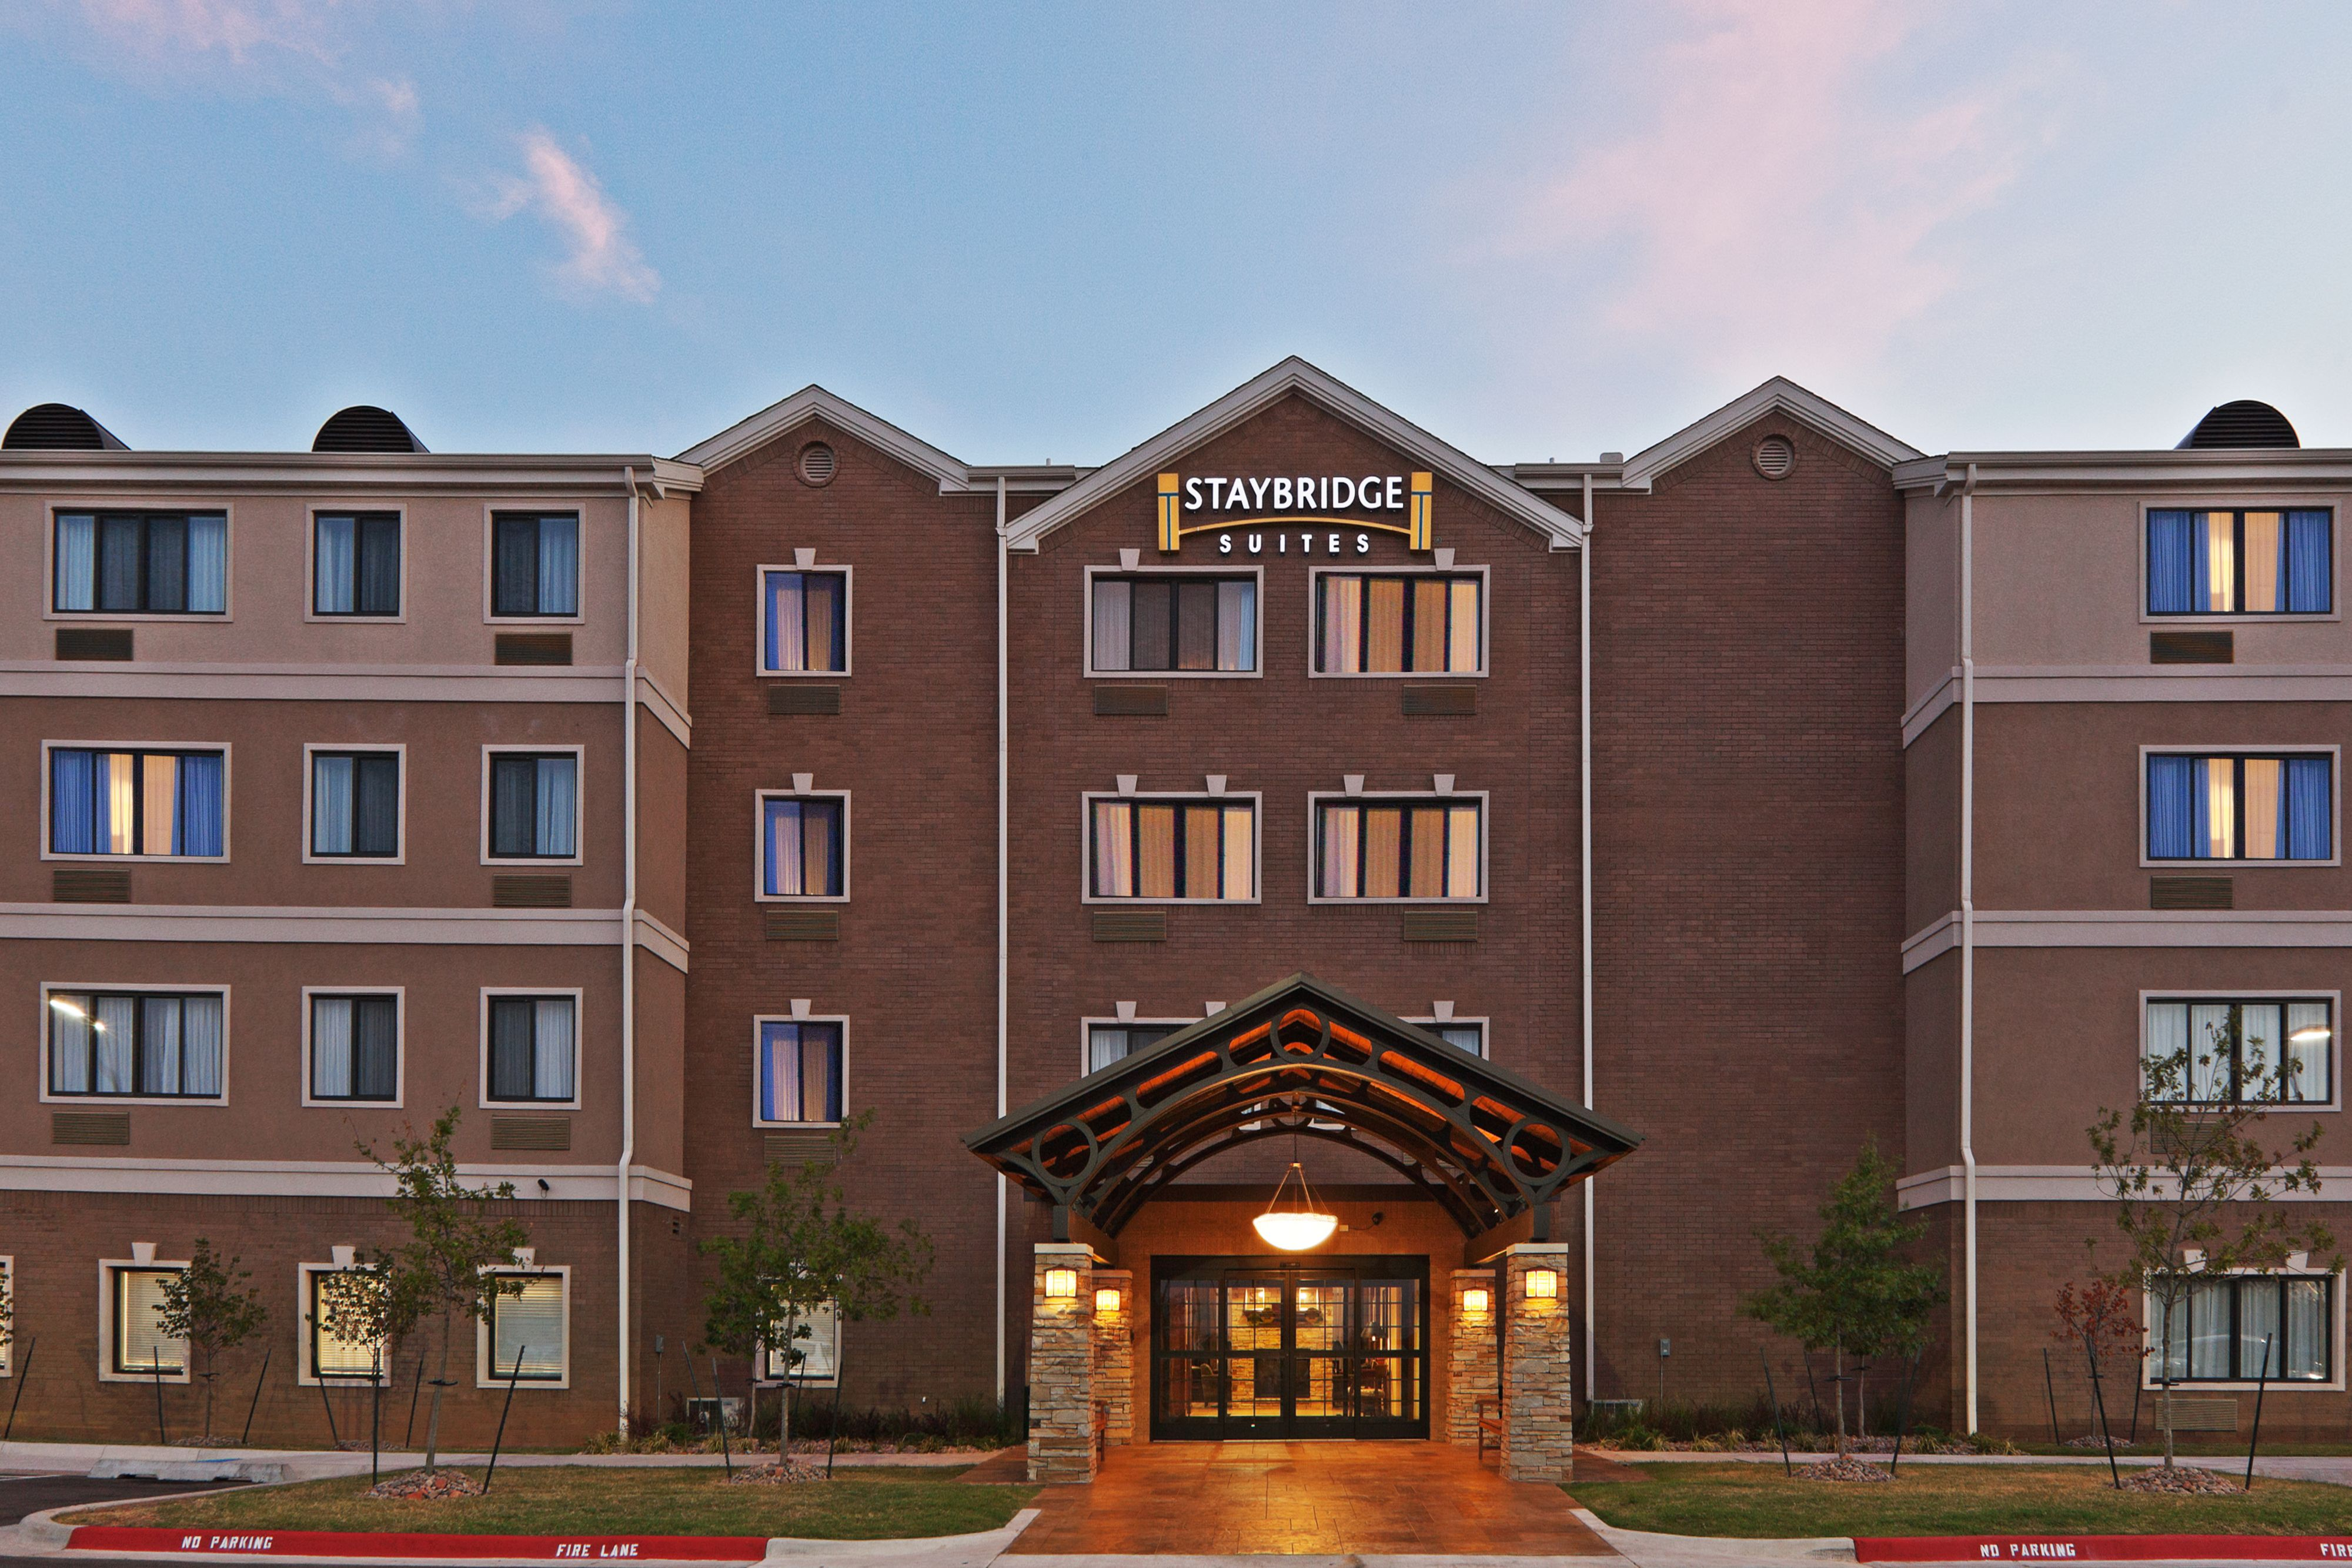 Stonehorse Crossing Apartments offers luxury apartments in Quail Springs Oklahoma City, OK with the finest amenities. Visit our website for more information.